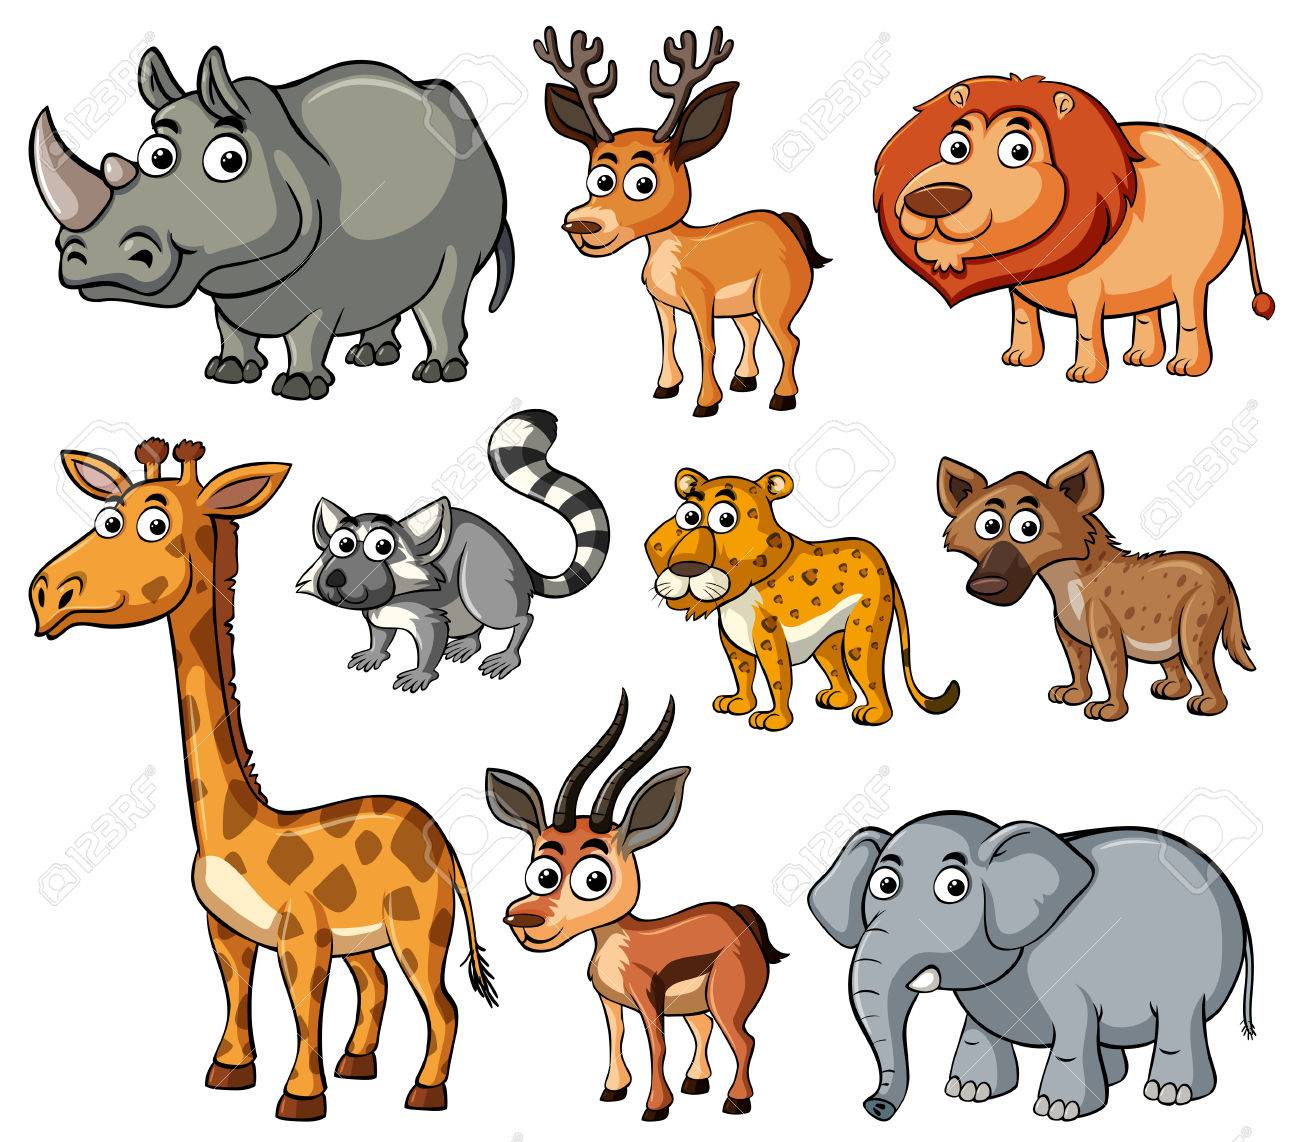 Different kinds of wild animals illustration.